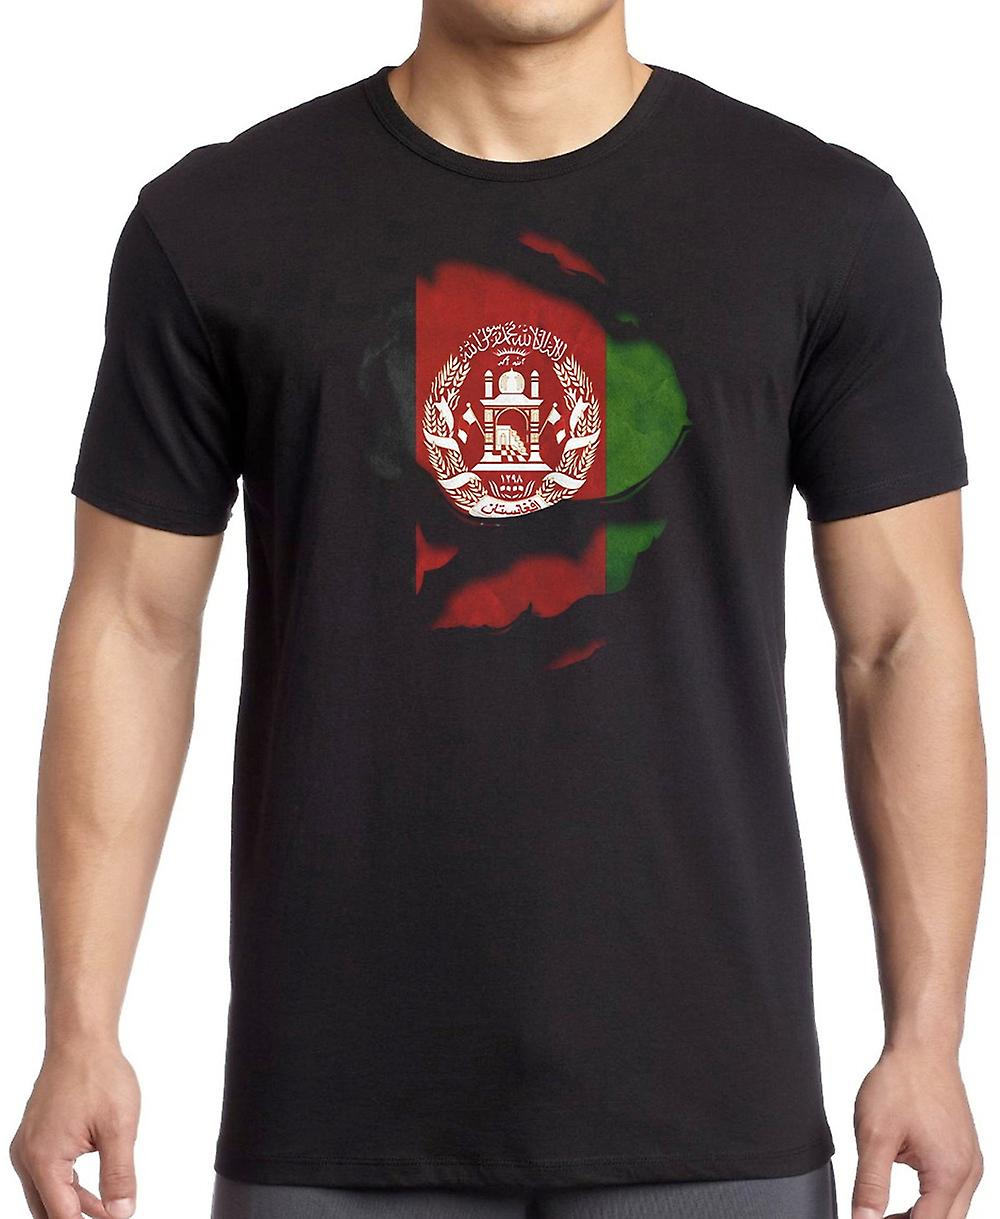 Afghanistan Afghani Ripped Effect Under Shirt T Shirt